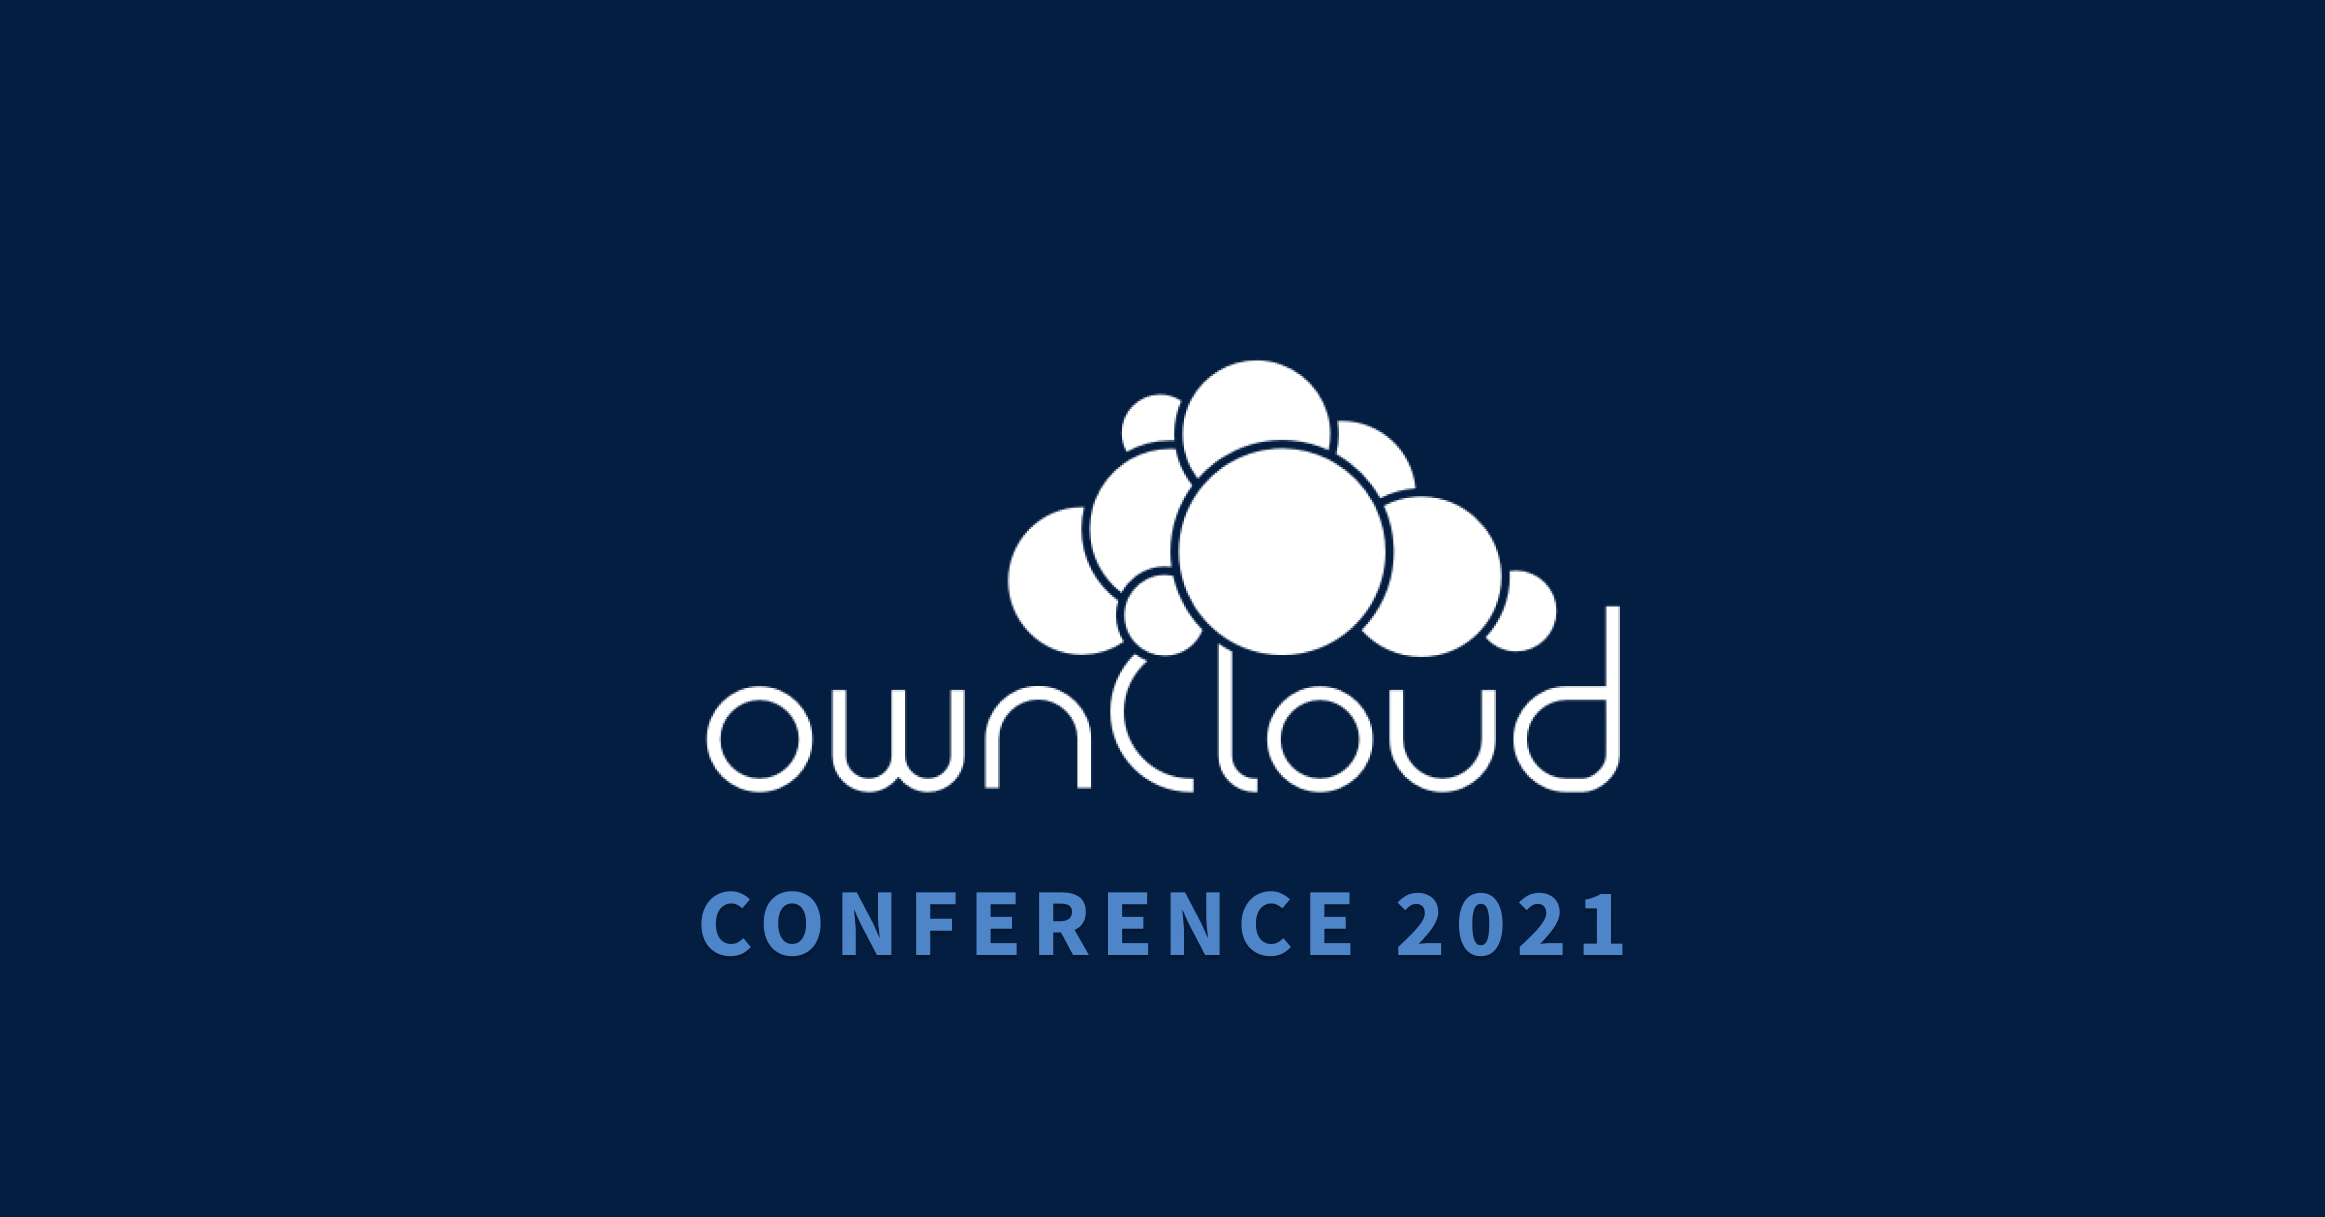 ownCloud Conference 2021